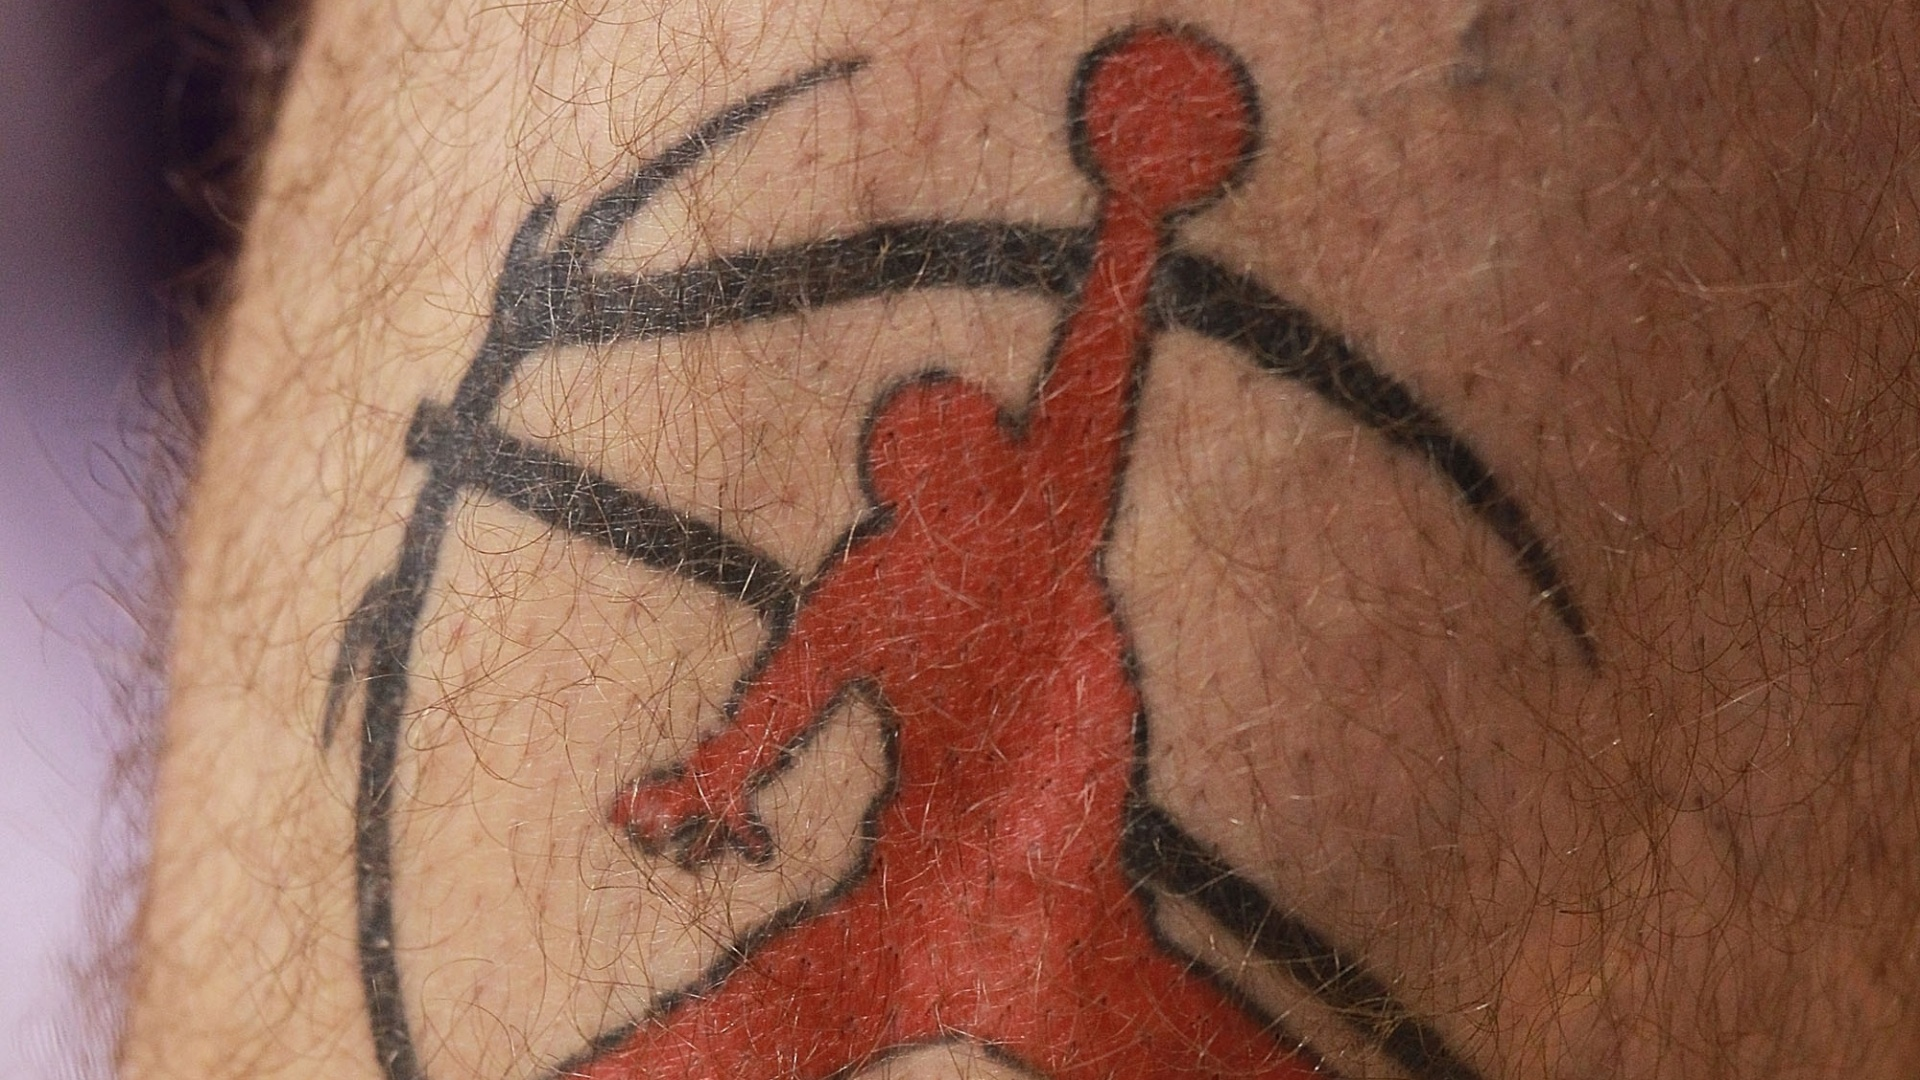 Um homem enterrando uma bola  o que aparece na tatuagem de Marcin Gortat, jogador de basquete do Phoenix Suns